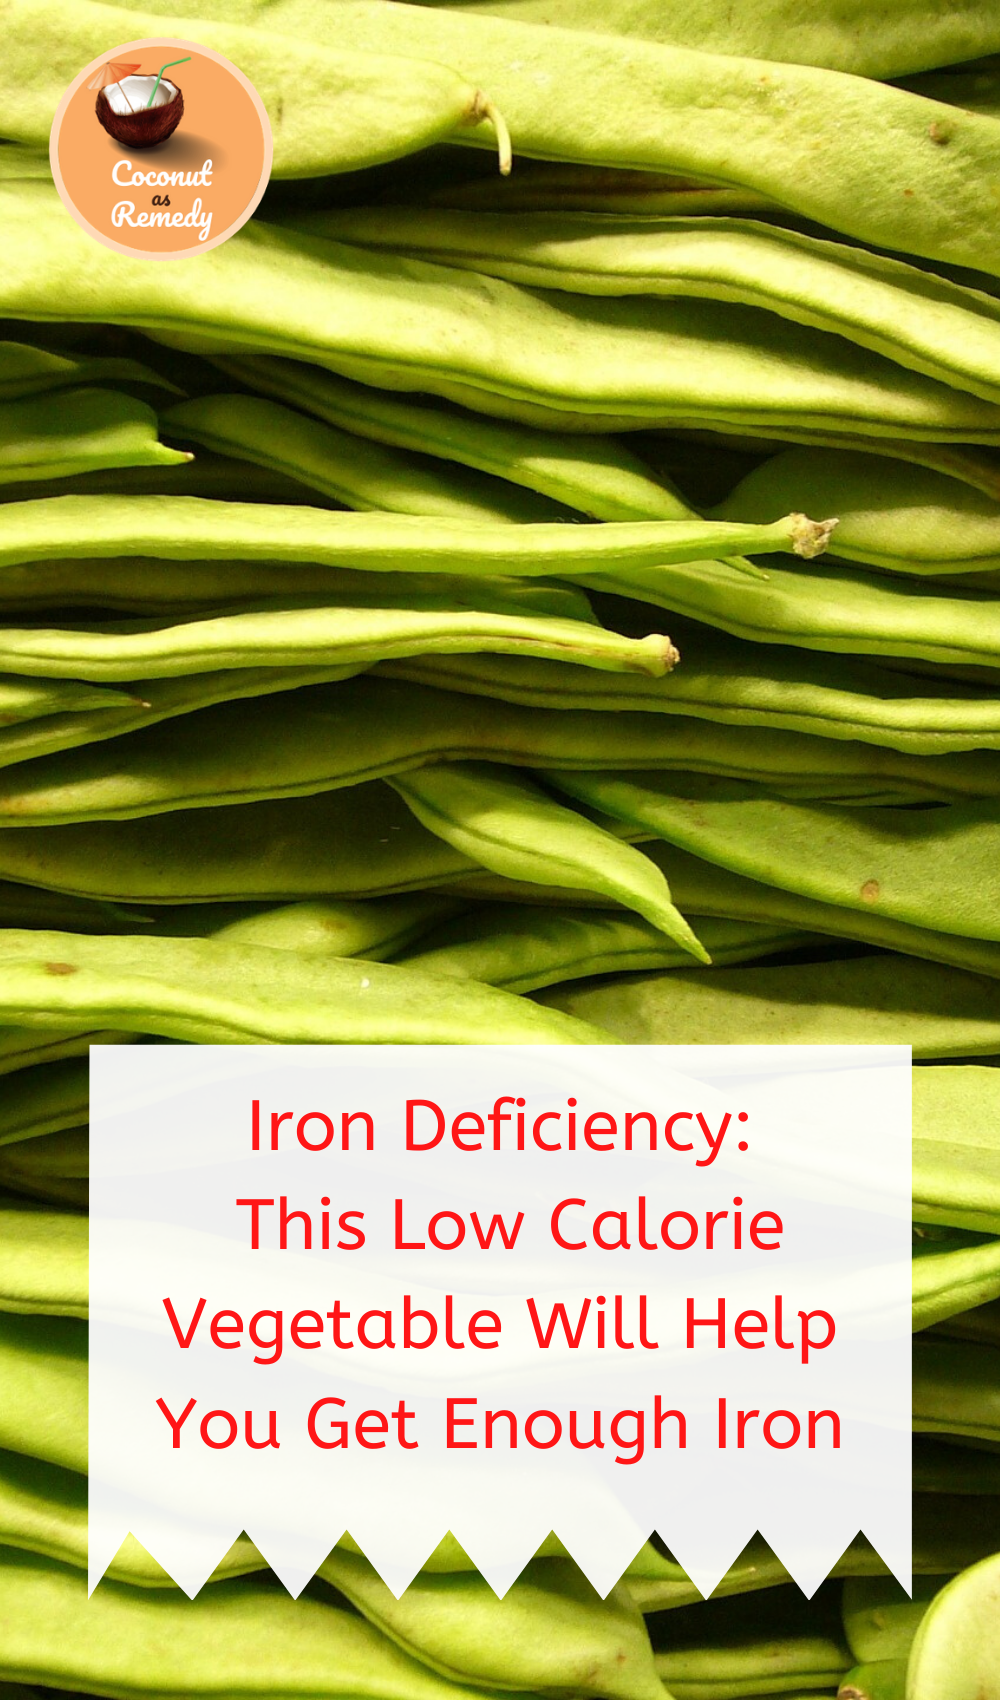 Iron Deficiency This Low Calorie Vegetable Will Help You Get Enough Iron Green beans is one of the few vegetables that contain few calories only 23 calories per 100 grams...